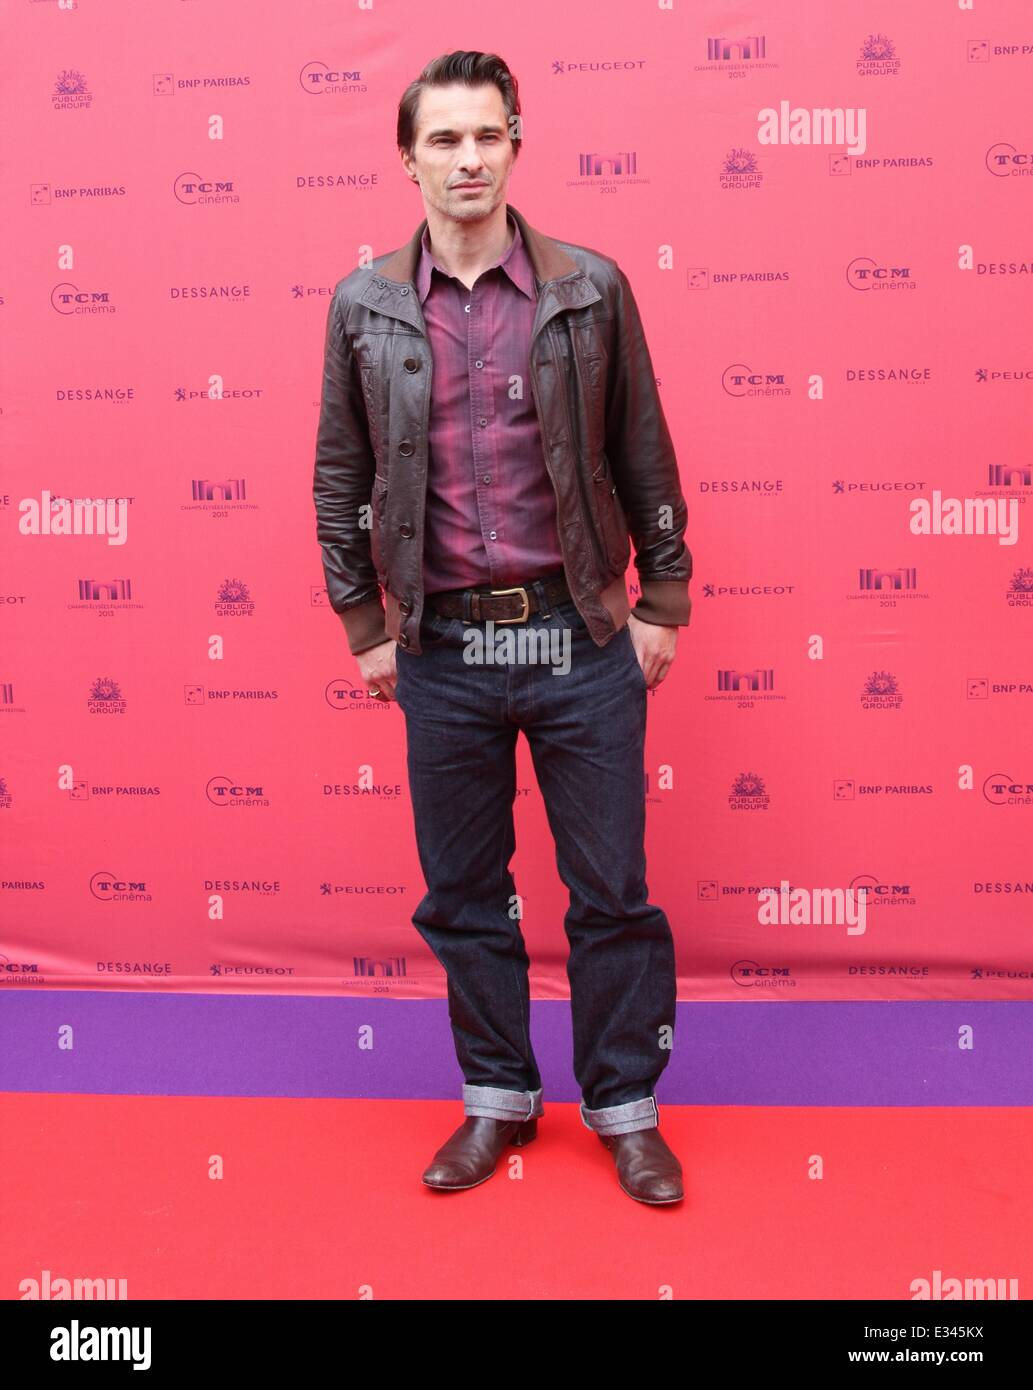 Champs Elysees Film Festival - 'Struck' Premiere at Publicis Champs Elysees  Featuring: Olivier Martinez - Stock Image